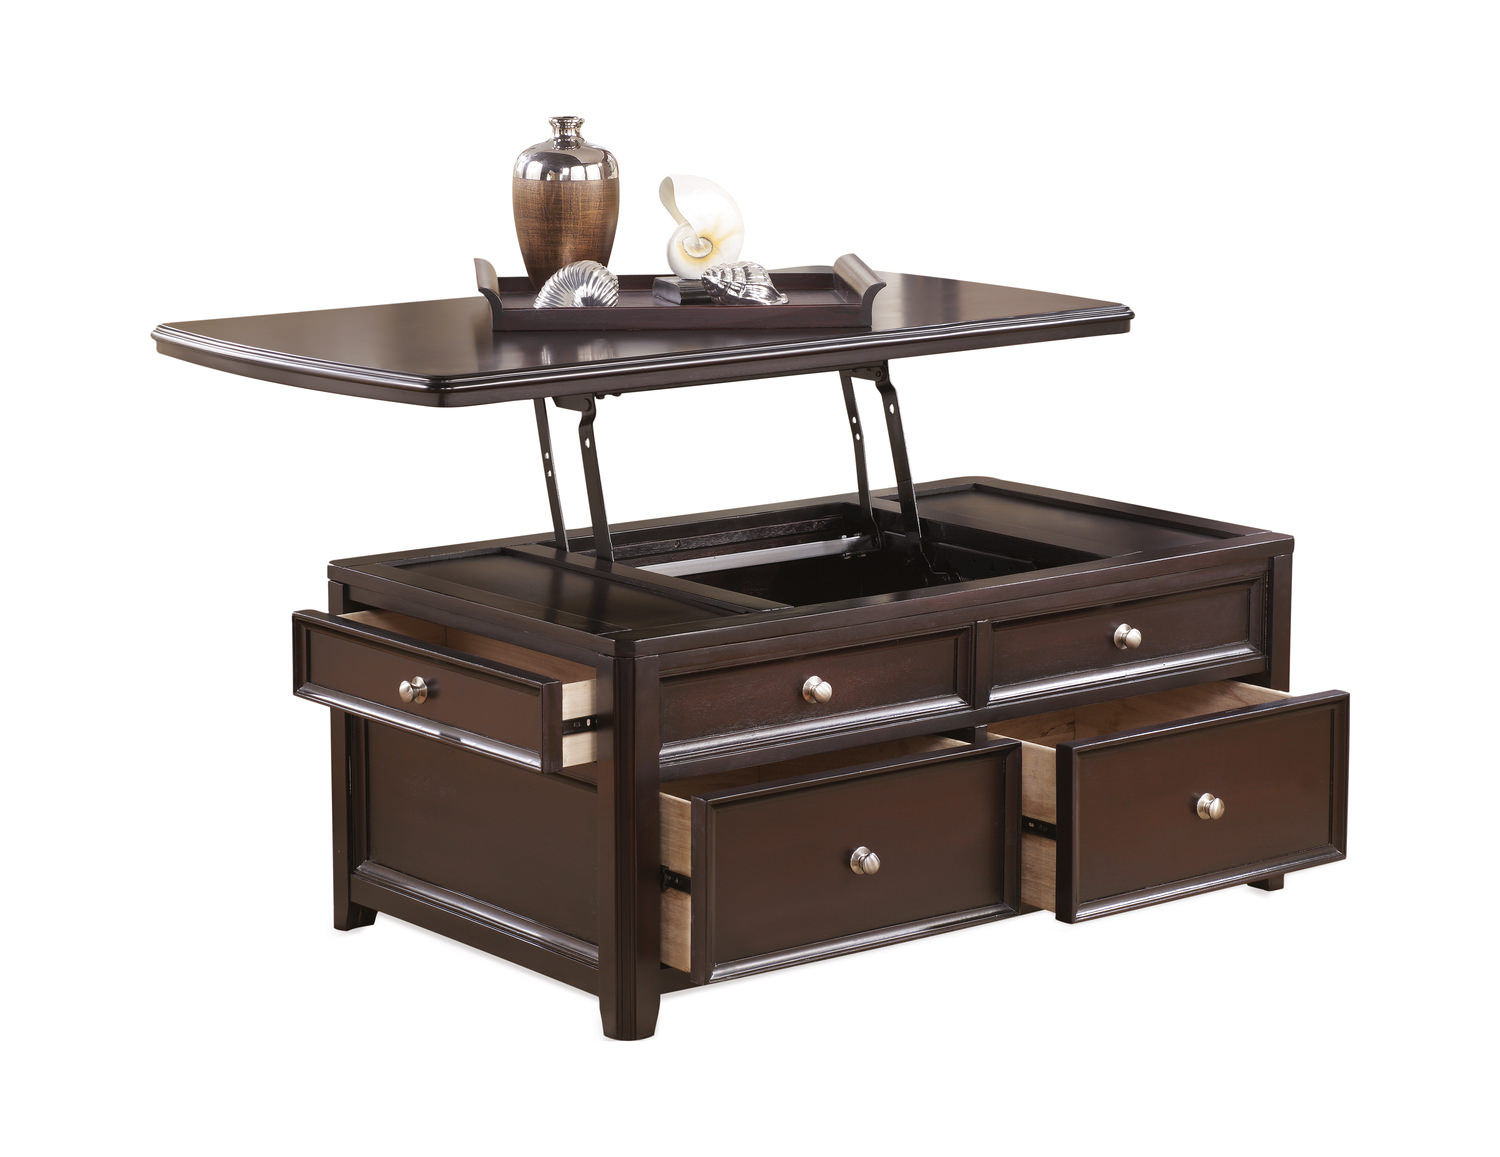 Carlyle Lift Top Coffee Table Hom Furniture regarding sizing 1500 X 1157